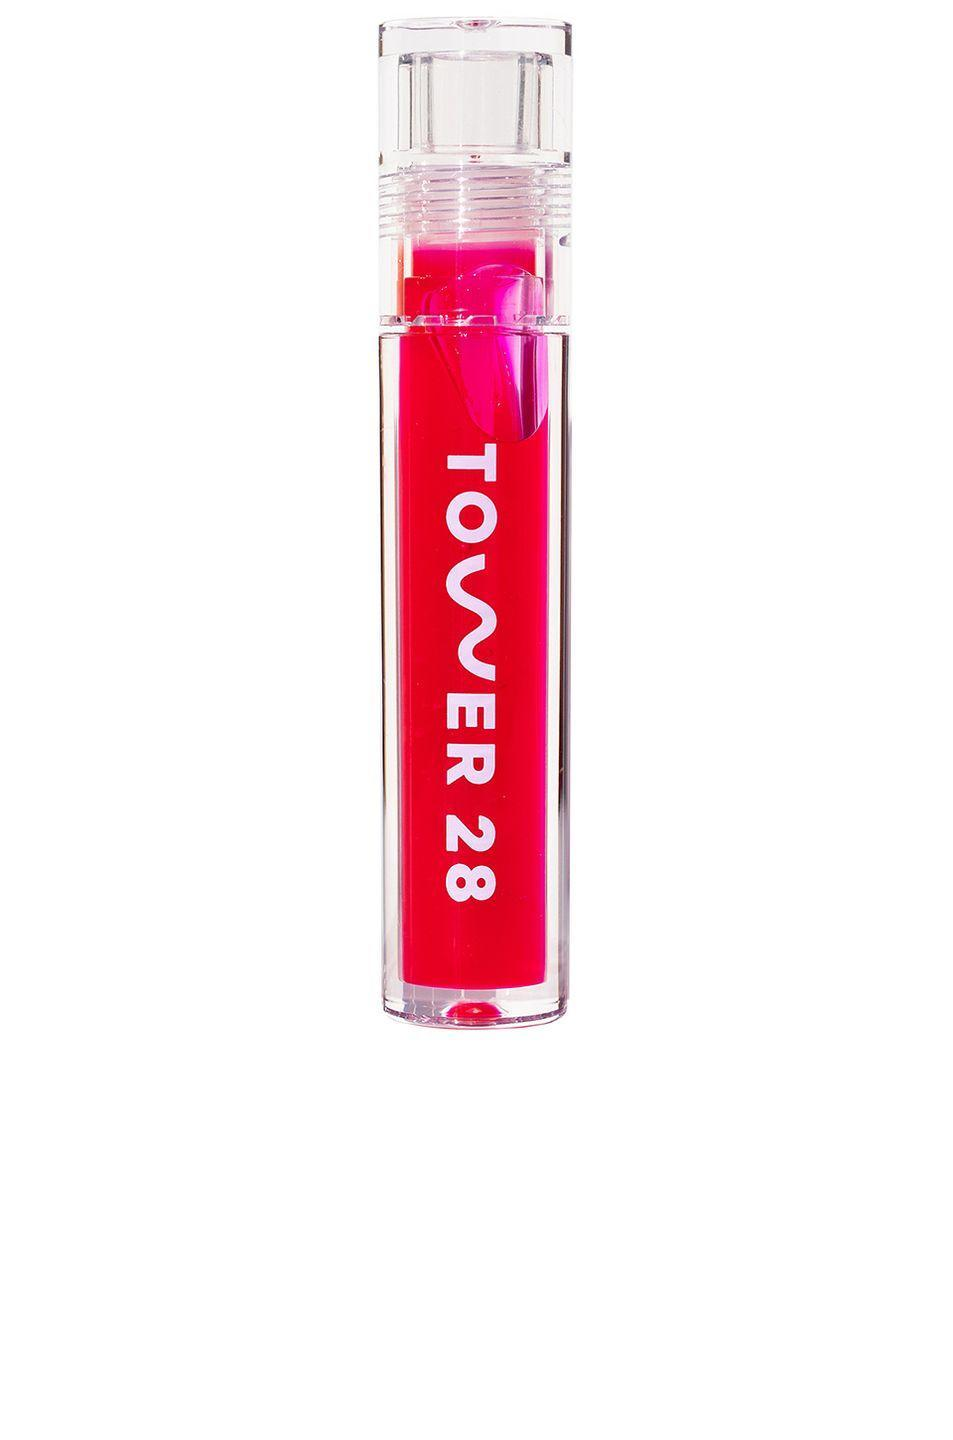 """<p><strong>This year's deal: </strong>If you're obsessed with <a href=""""https://www.tower28beauty.com/products/shine-on-lip-gloss-jelly"""" rel=""""nofollow noopener"""" target=""""_blank"""" data-ylk=""""slk:Tower28's ShineOn Jelly Lip Gloss"""" class=""""link rapid-noclick-resp"""">Tower28's ShineOn Jelly Lip Gloss</a> like we are, you're in luck. You can stock up on the gloss and anything else with 20% off from 11/27-11/30.<br><br><strong><a href=""""https://www.tower28beauty.com/"""" rel=""""nofollow noopener"""" target=""""_blank"""" data-ylk=""""slk:Tower28"""" class=""""link rapid-noclick-resp"""">Tower28</a></strong> <a class=""""link rapid-noclick-resp"""" href=""""https://go.redirectingat.com?id=74968X1596630&url=https%3A%2F%2Fwww.tower28beauty.com%2F&sref=https%3A%2F%2Fwww.redbookmag.com%2Fbeauty%2Fg34669325%2Fblack-friday-cyber-monday-beauty-deals-2020%2F"""" rel=""""nofollow noopener"""" target=""""_blank"""" data-ylk=""""slk:SHOP"""">SHOP</a> </p>"""